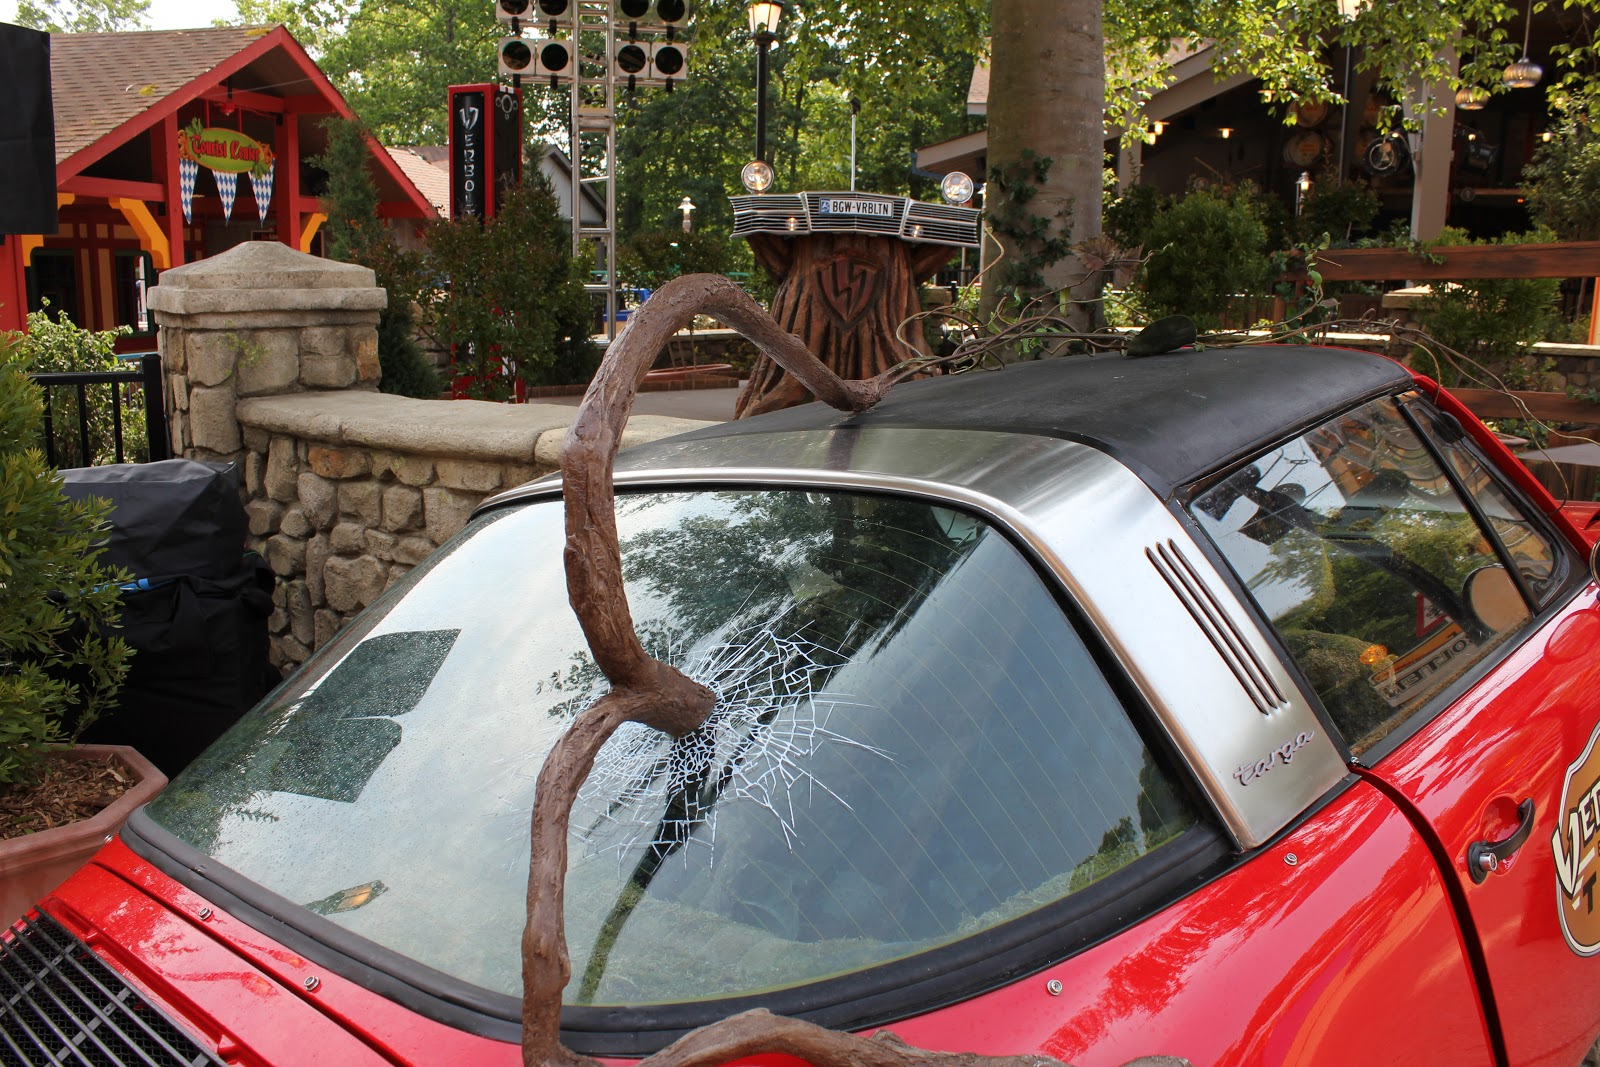 As You Walk Up To The Attraction Immediately Notice A German Targa Automobile That Has Been Severely Damaged By Looks Of Gigantic Vine